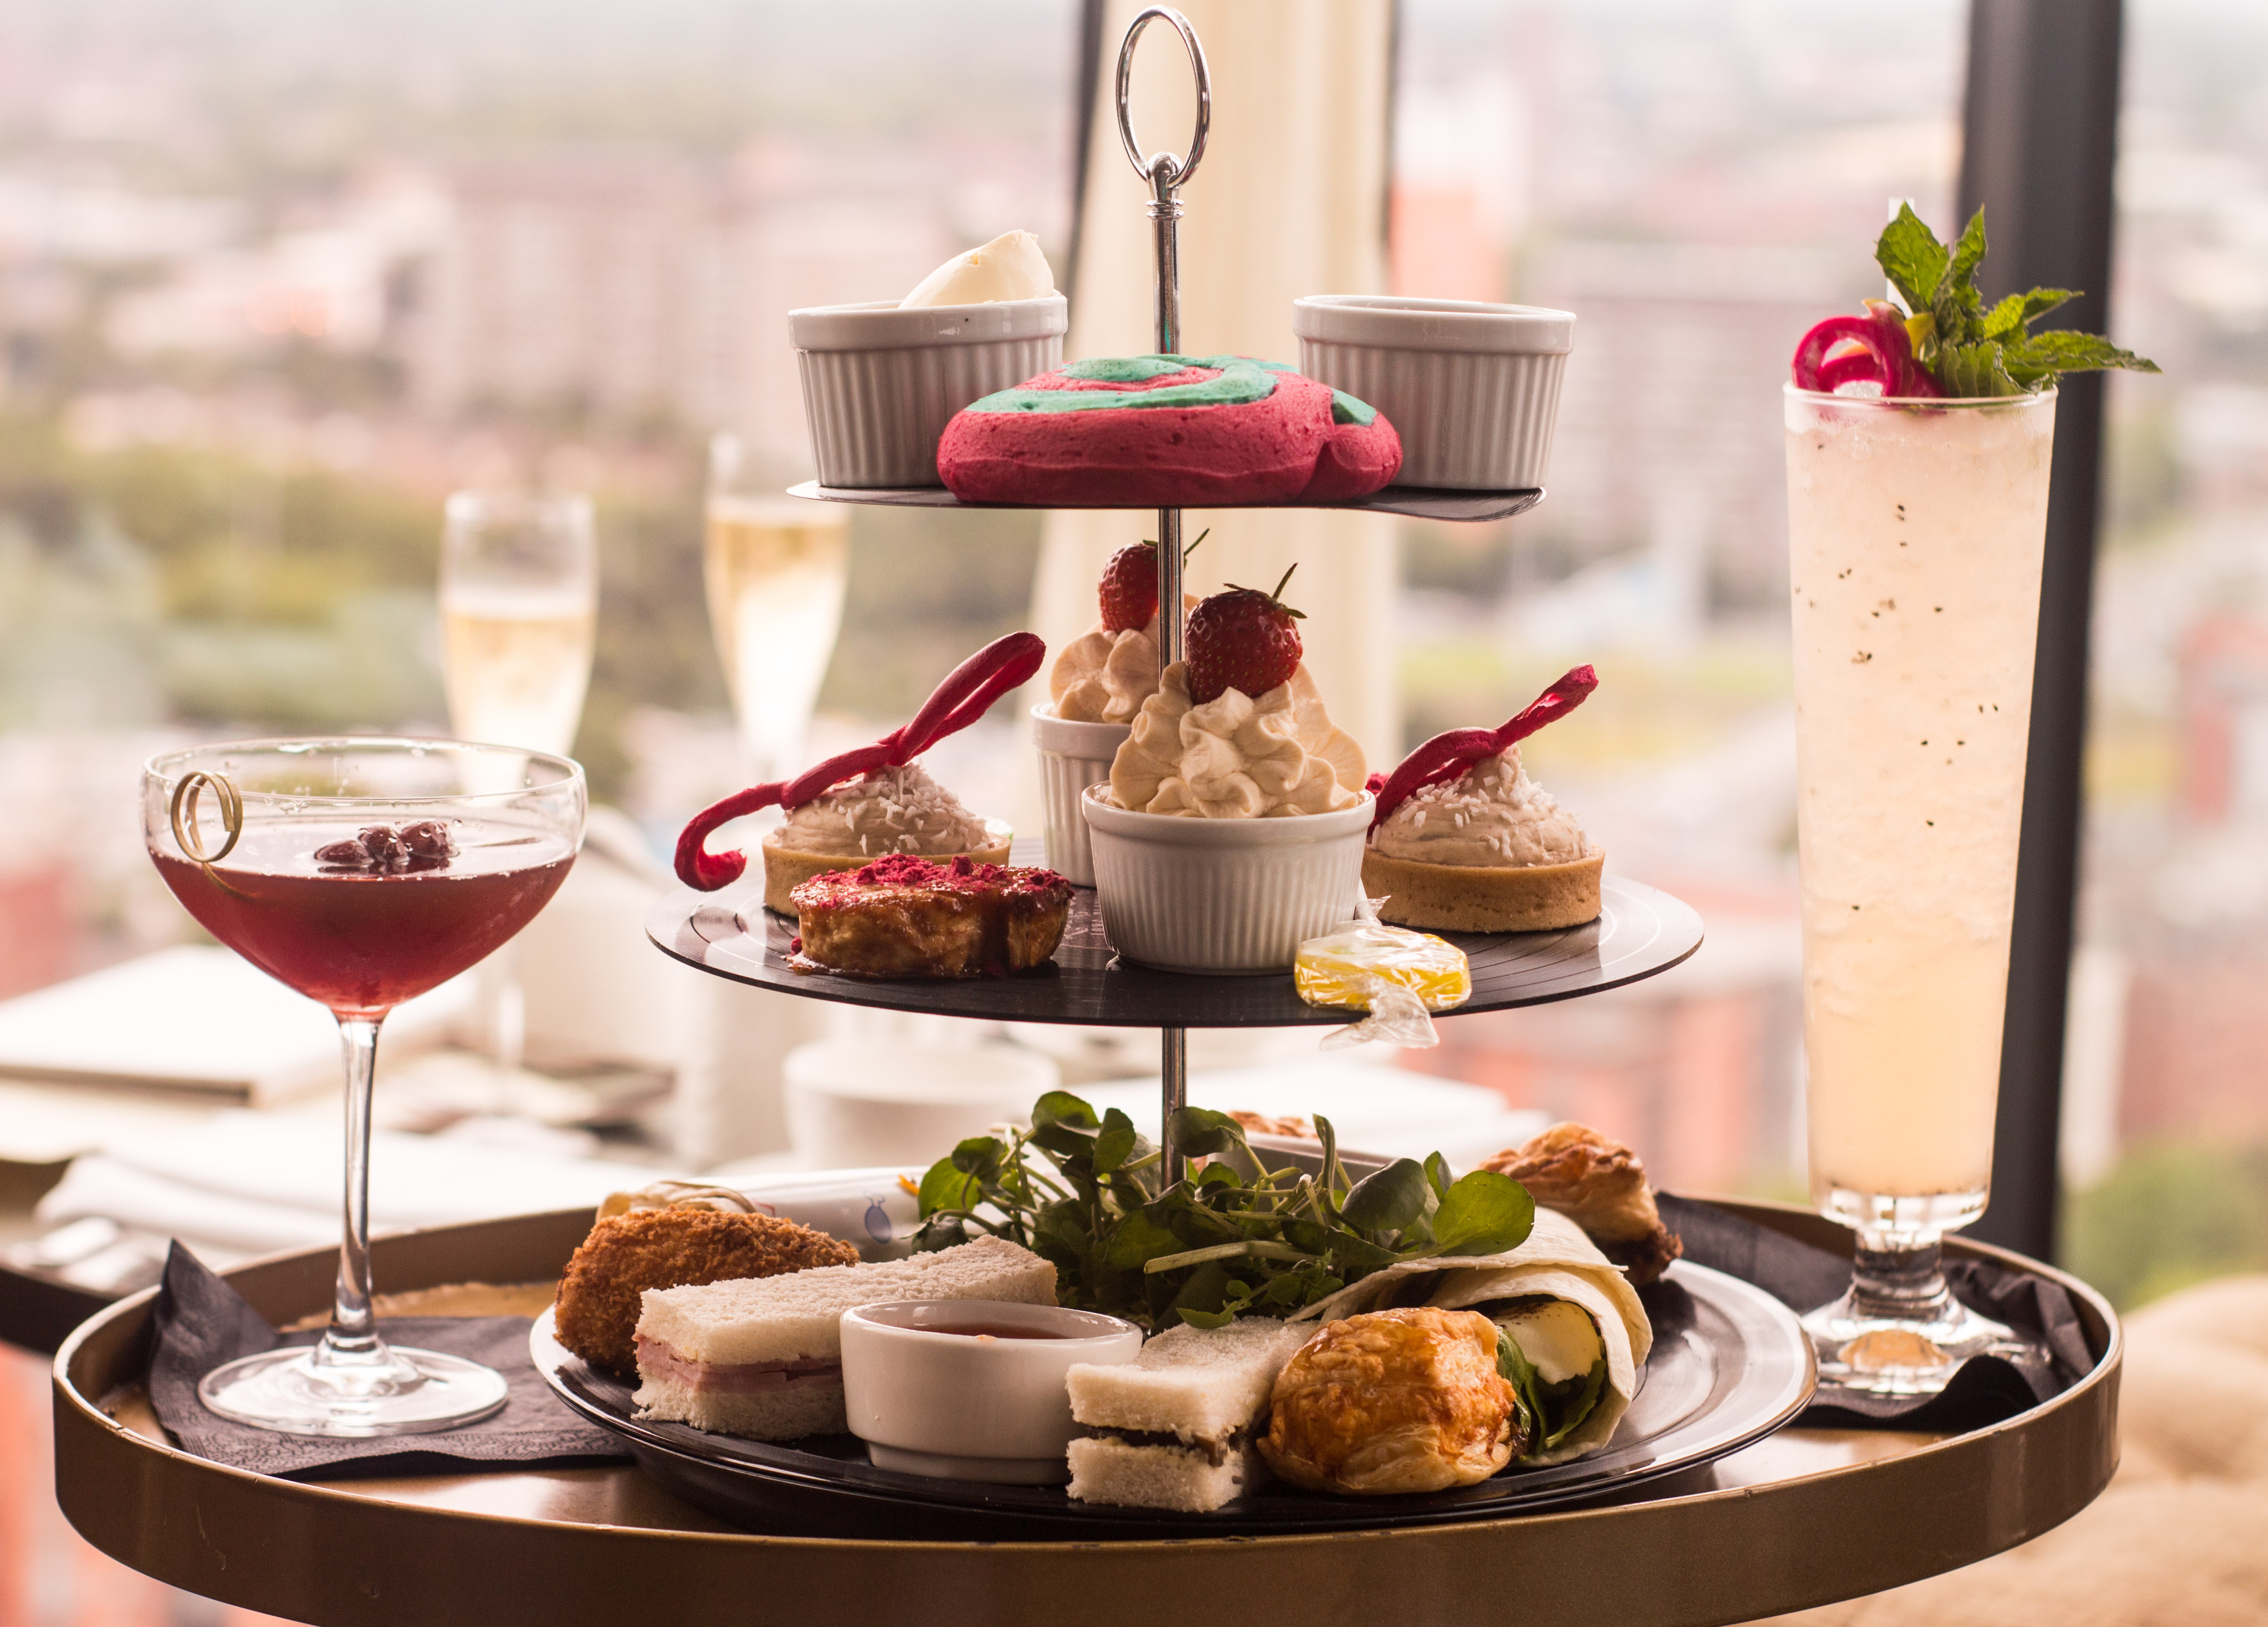 Discover great Coffee & Afternoon Tea deals near you